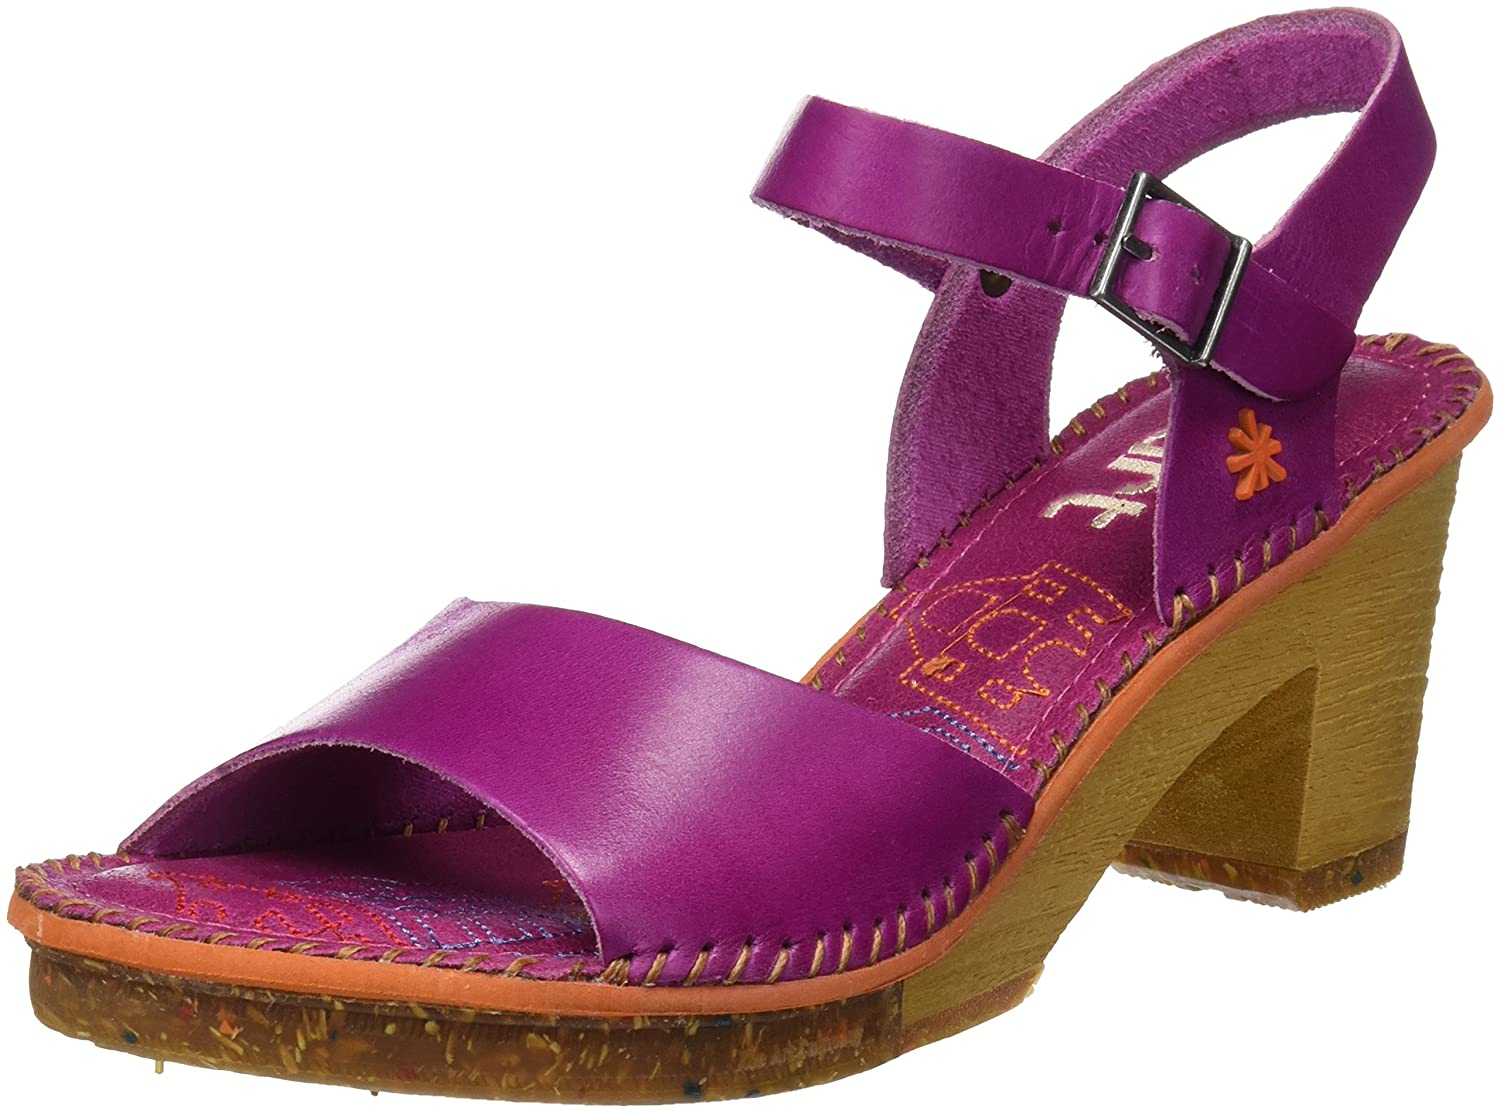 6de74904b0c Art Women's 0325 Mojave Amsterdam Open Toe Sandals: Amazon.co.uk: Shoes &  Bags